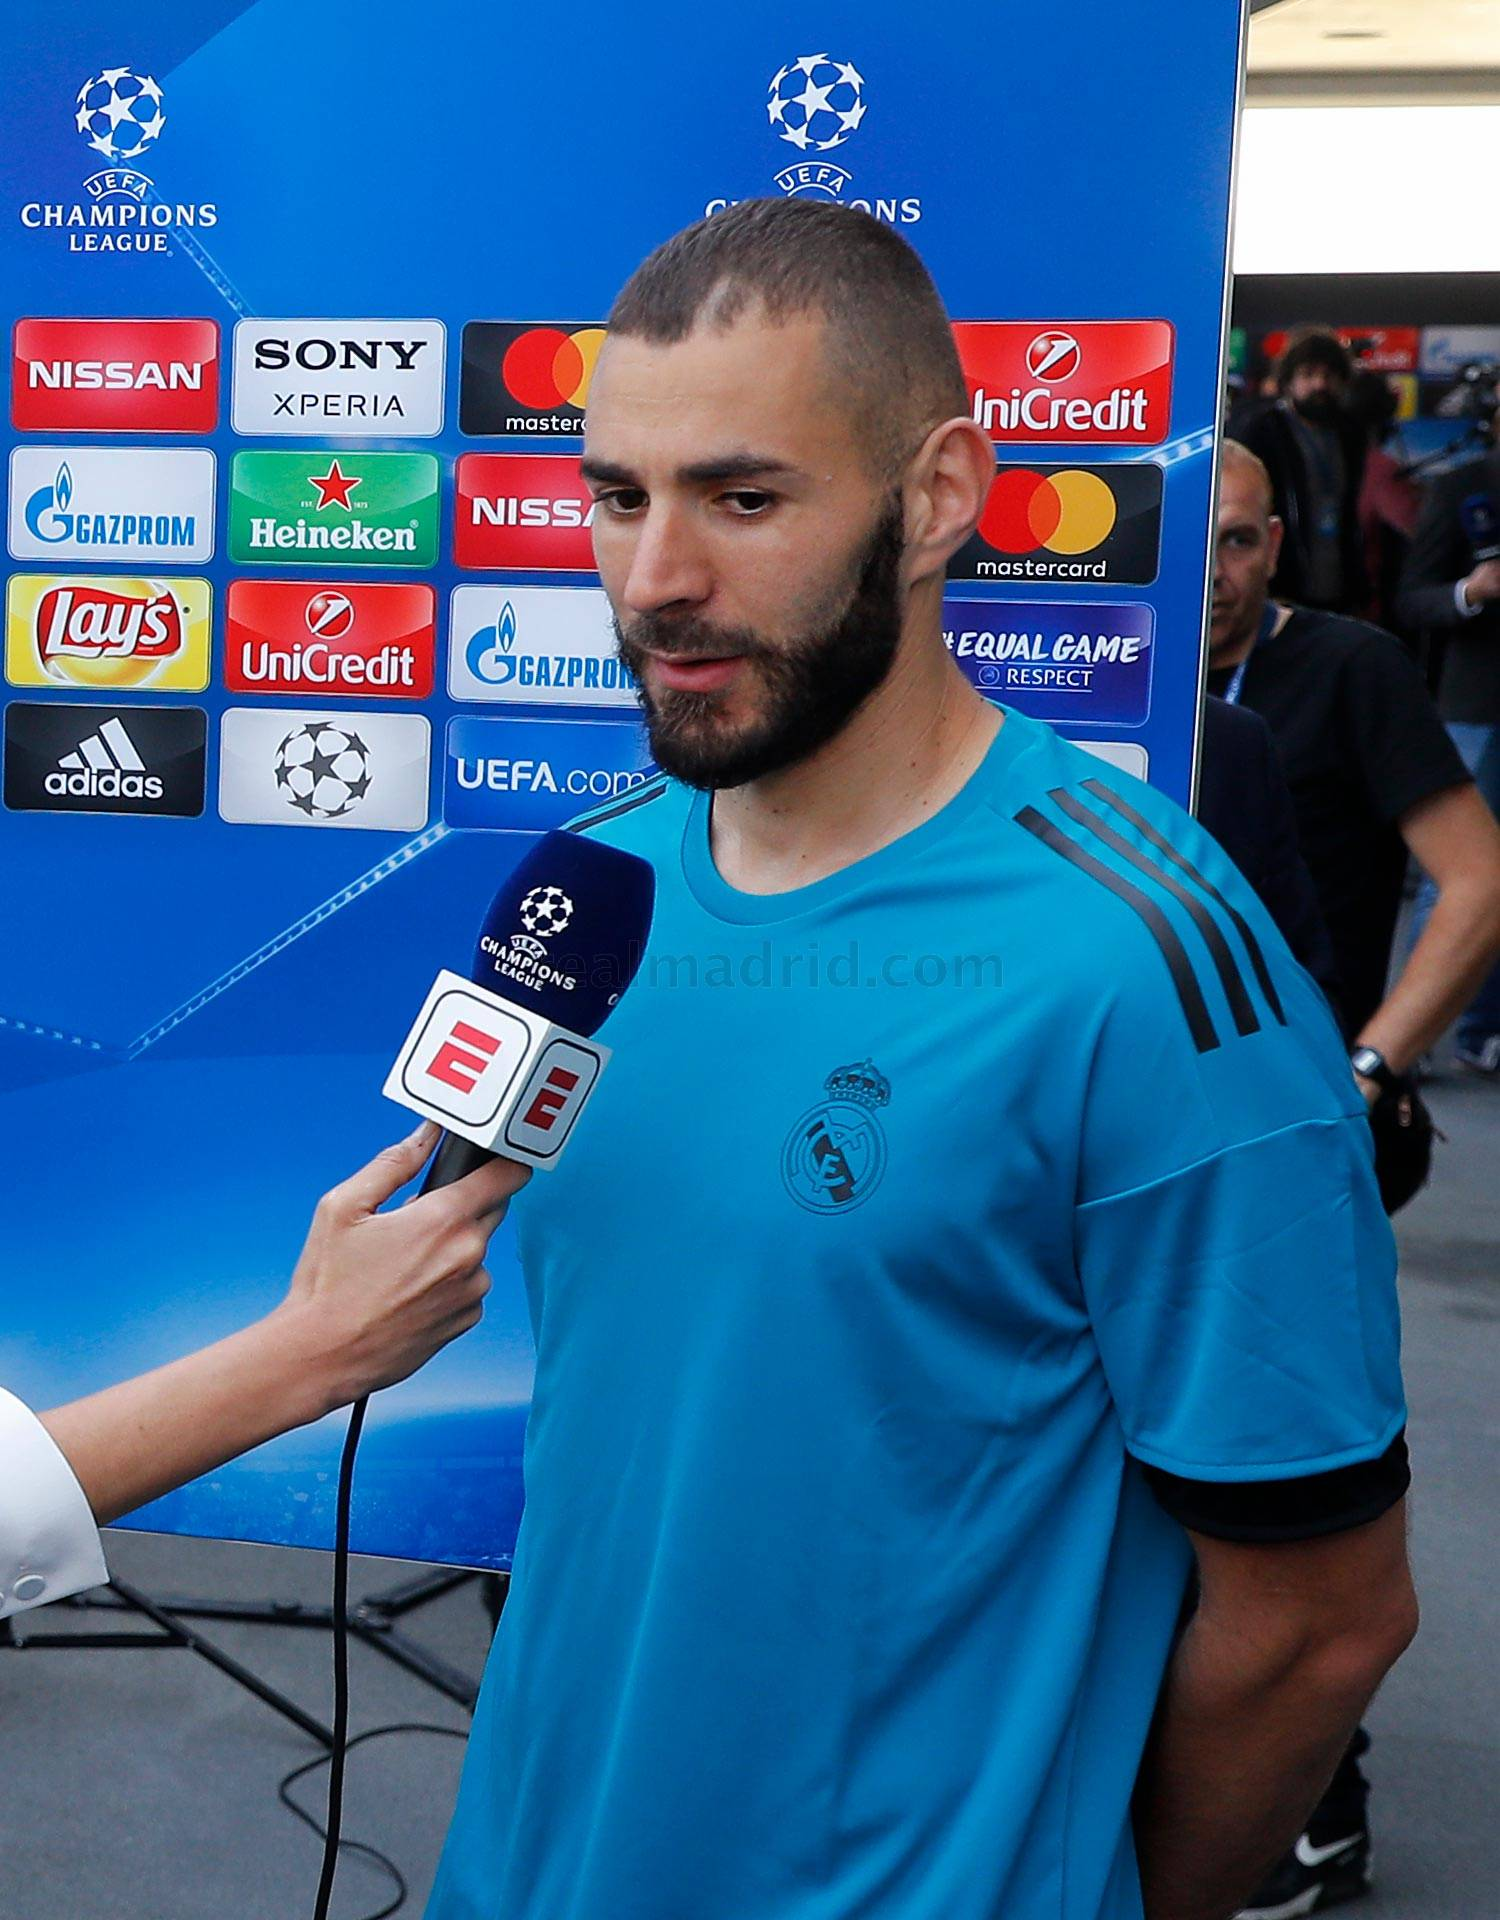 Real Madrid - Benzema durante el Open Media Day 2018 - 22-05-2018